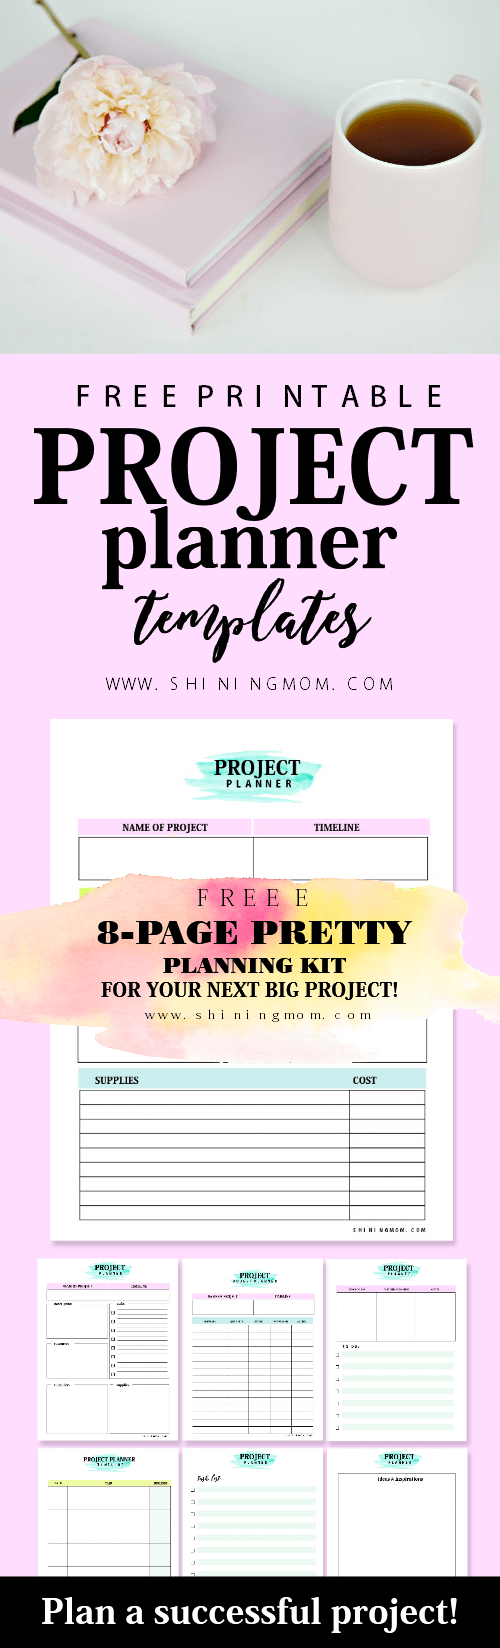 Free Project Planner Template Project Plan Template Get Your Free Pretty Planner  Project .